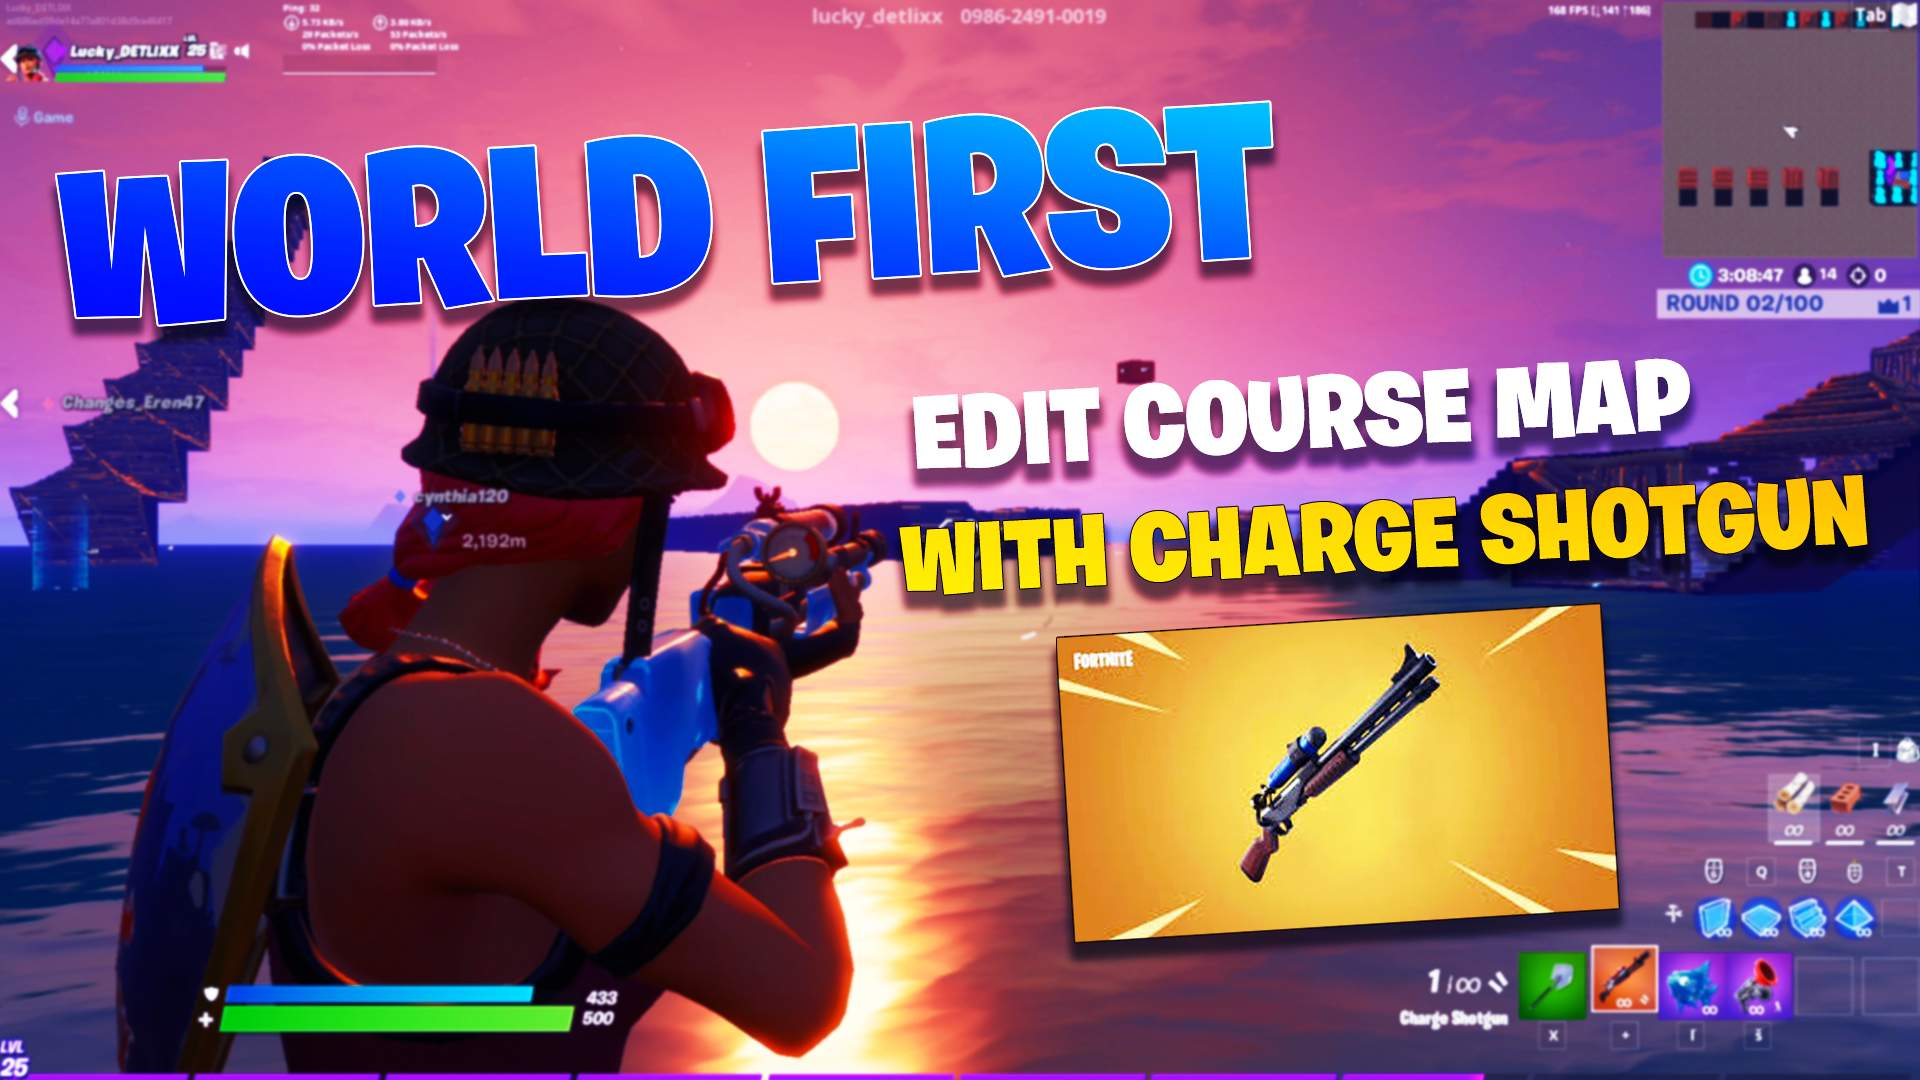 UPDATED - CHARGE SHOTGUN EDIT COURSE